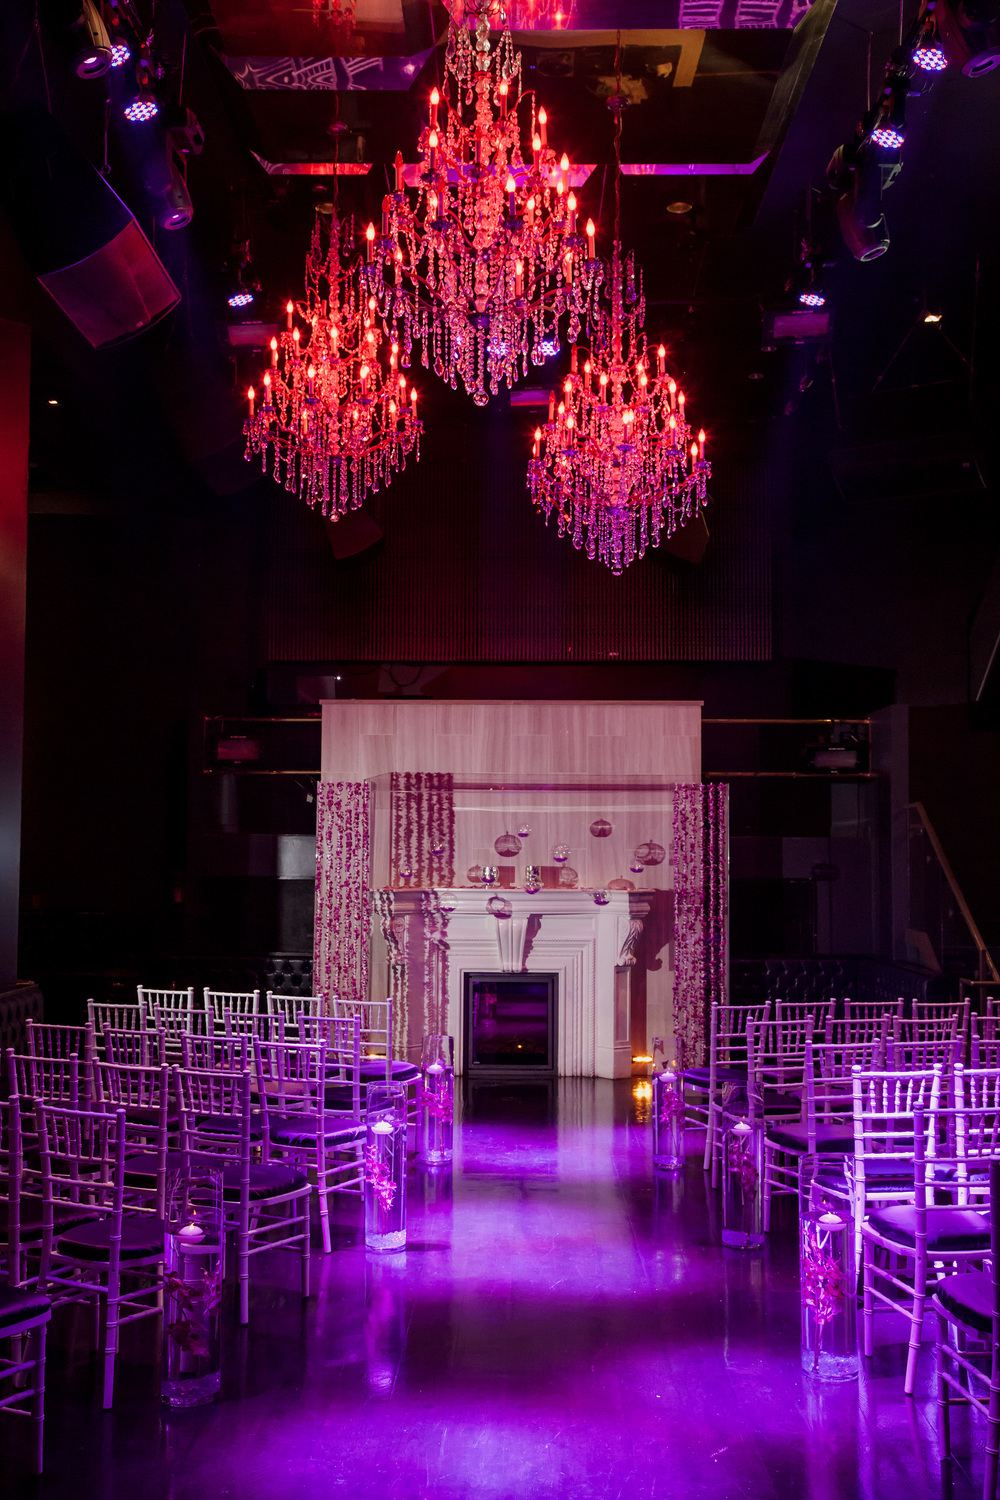 Dramatic lighting turned Chateau Nightclub into a romantic setting for the wedding ceremony.